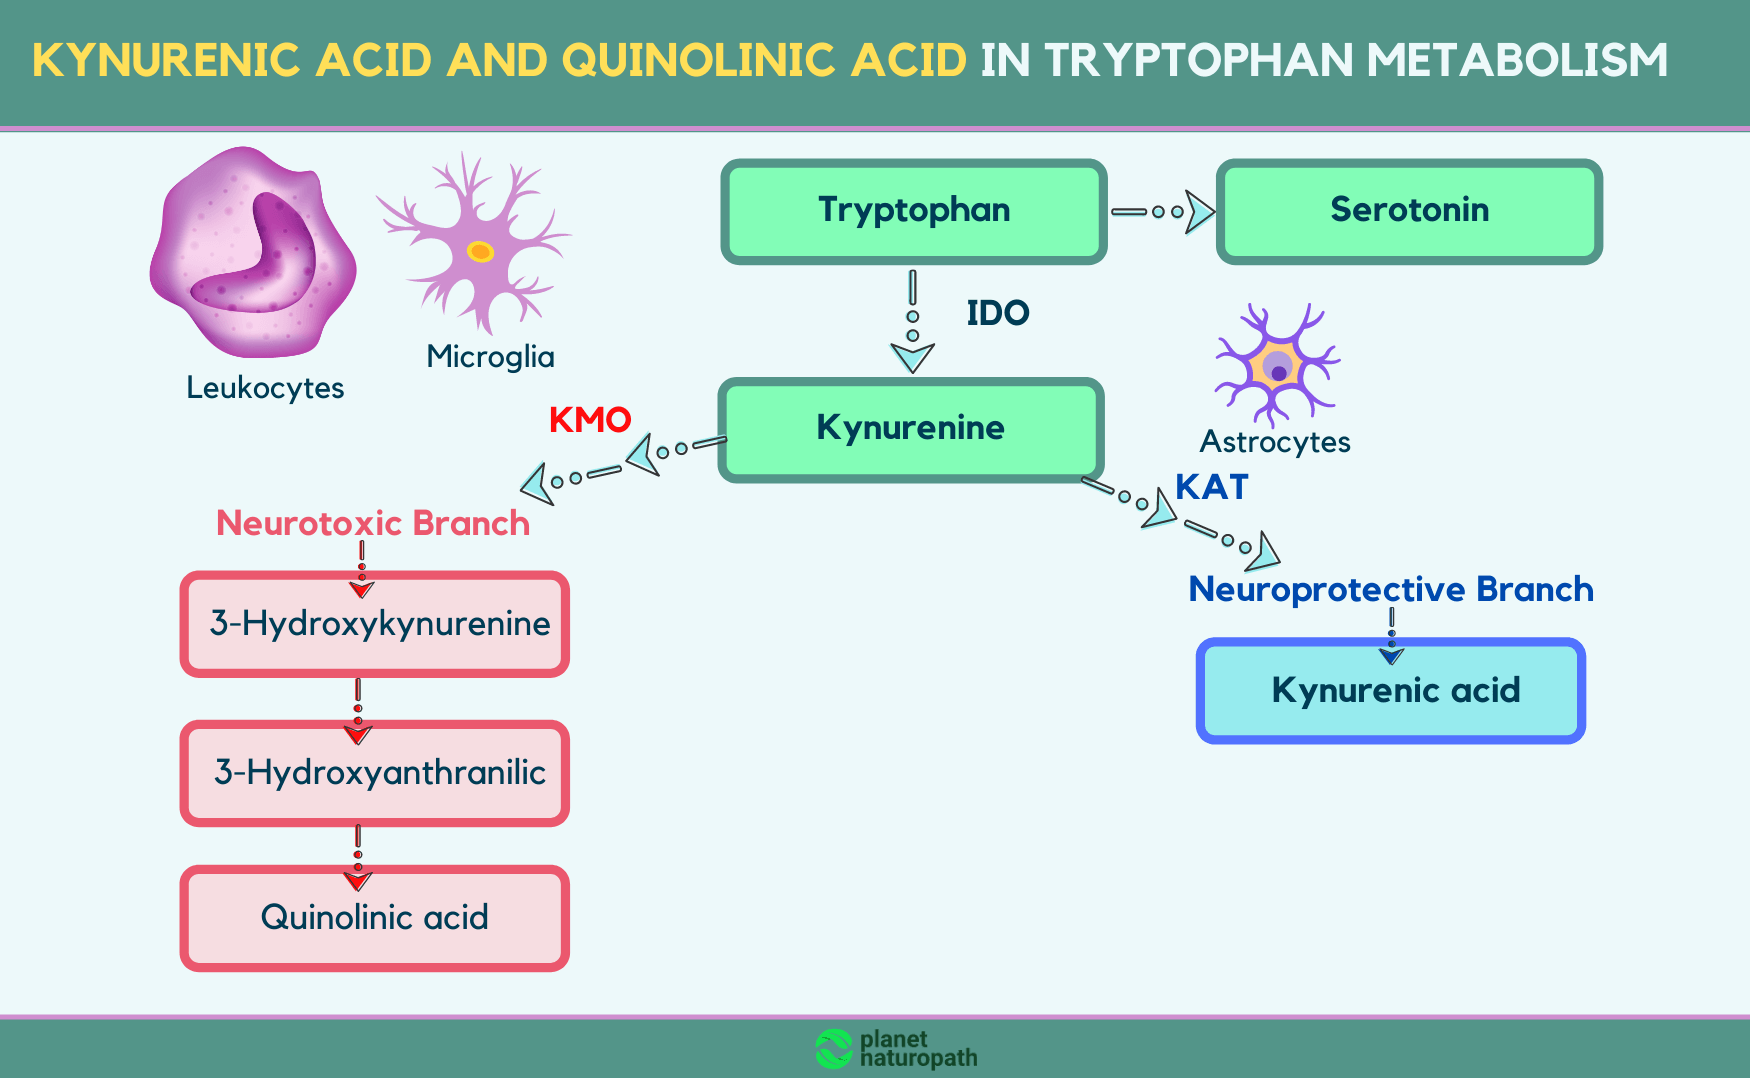 Kynurenic-acid-and-quinolinic-acid-in-tryptophan-metabolism